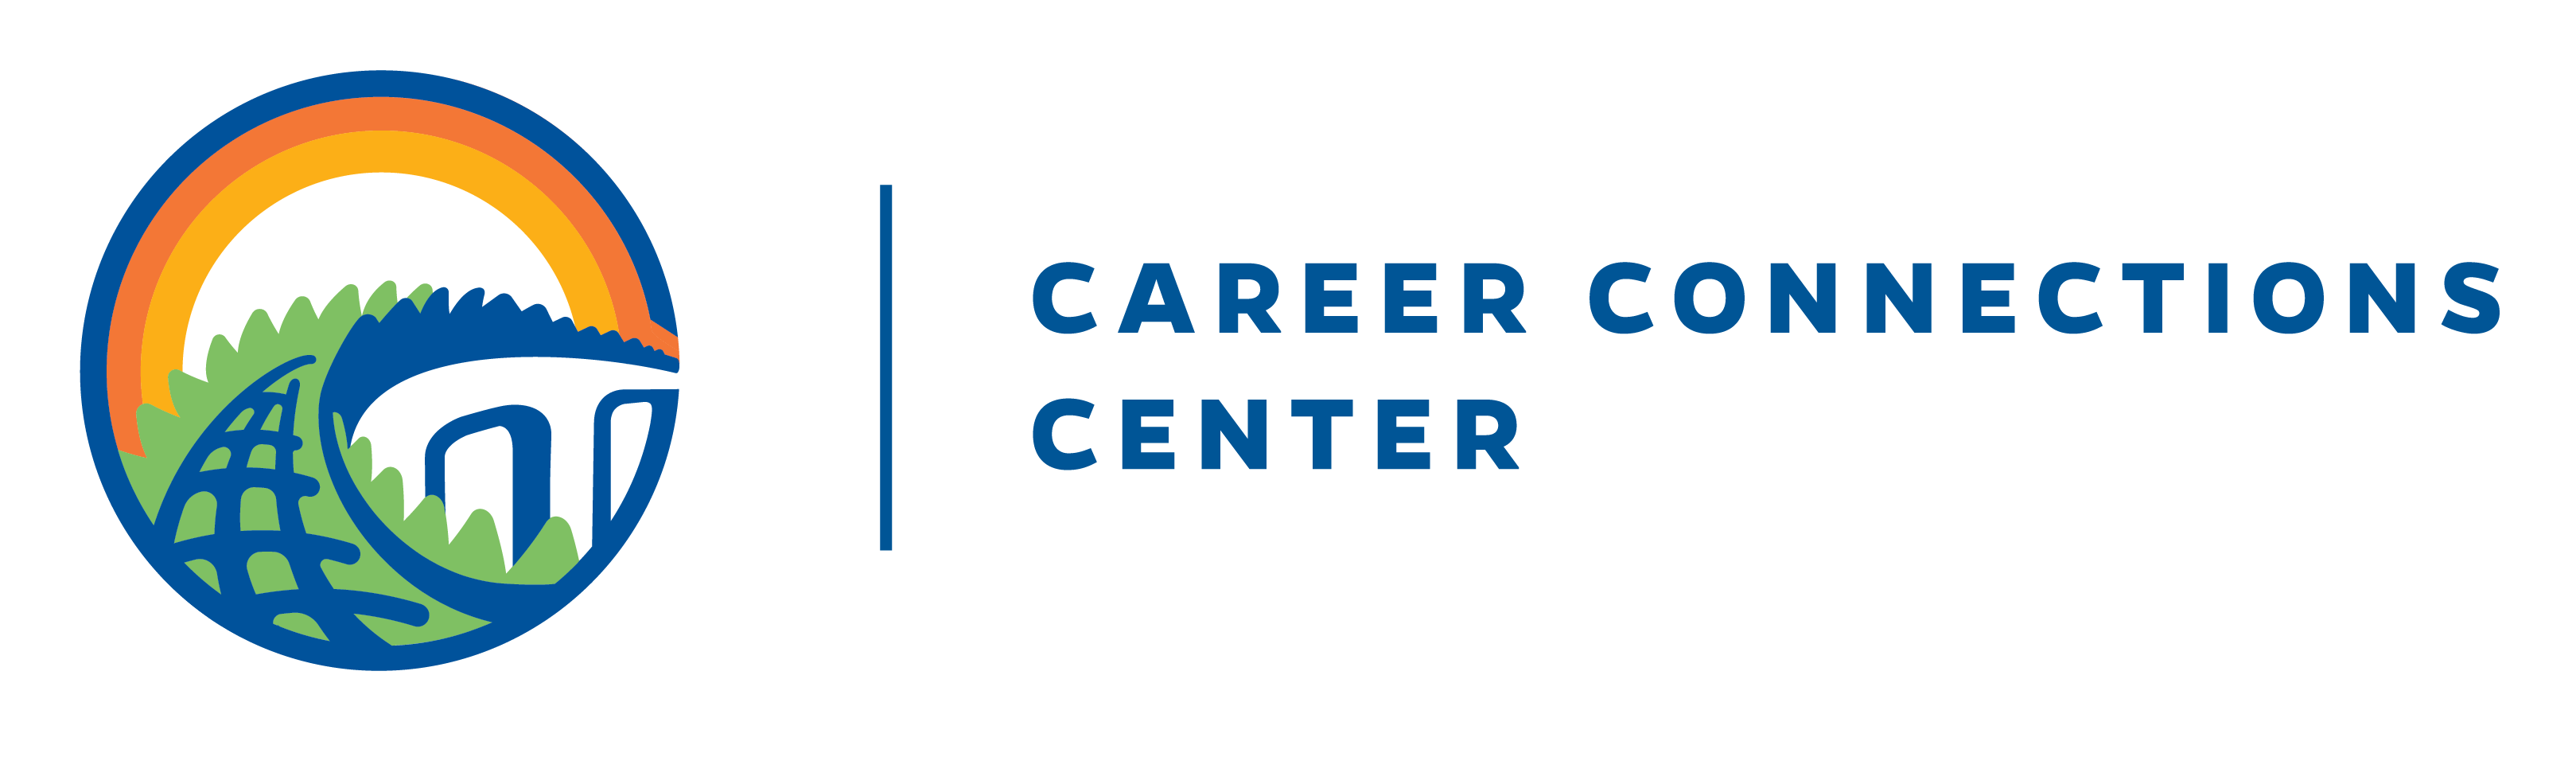 University of Florida, Career Connection Center